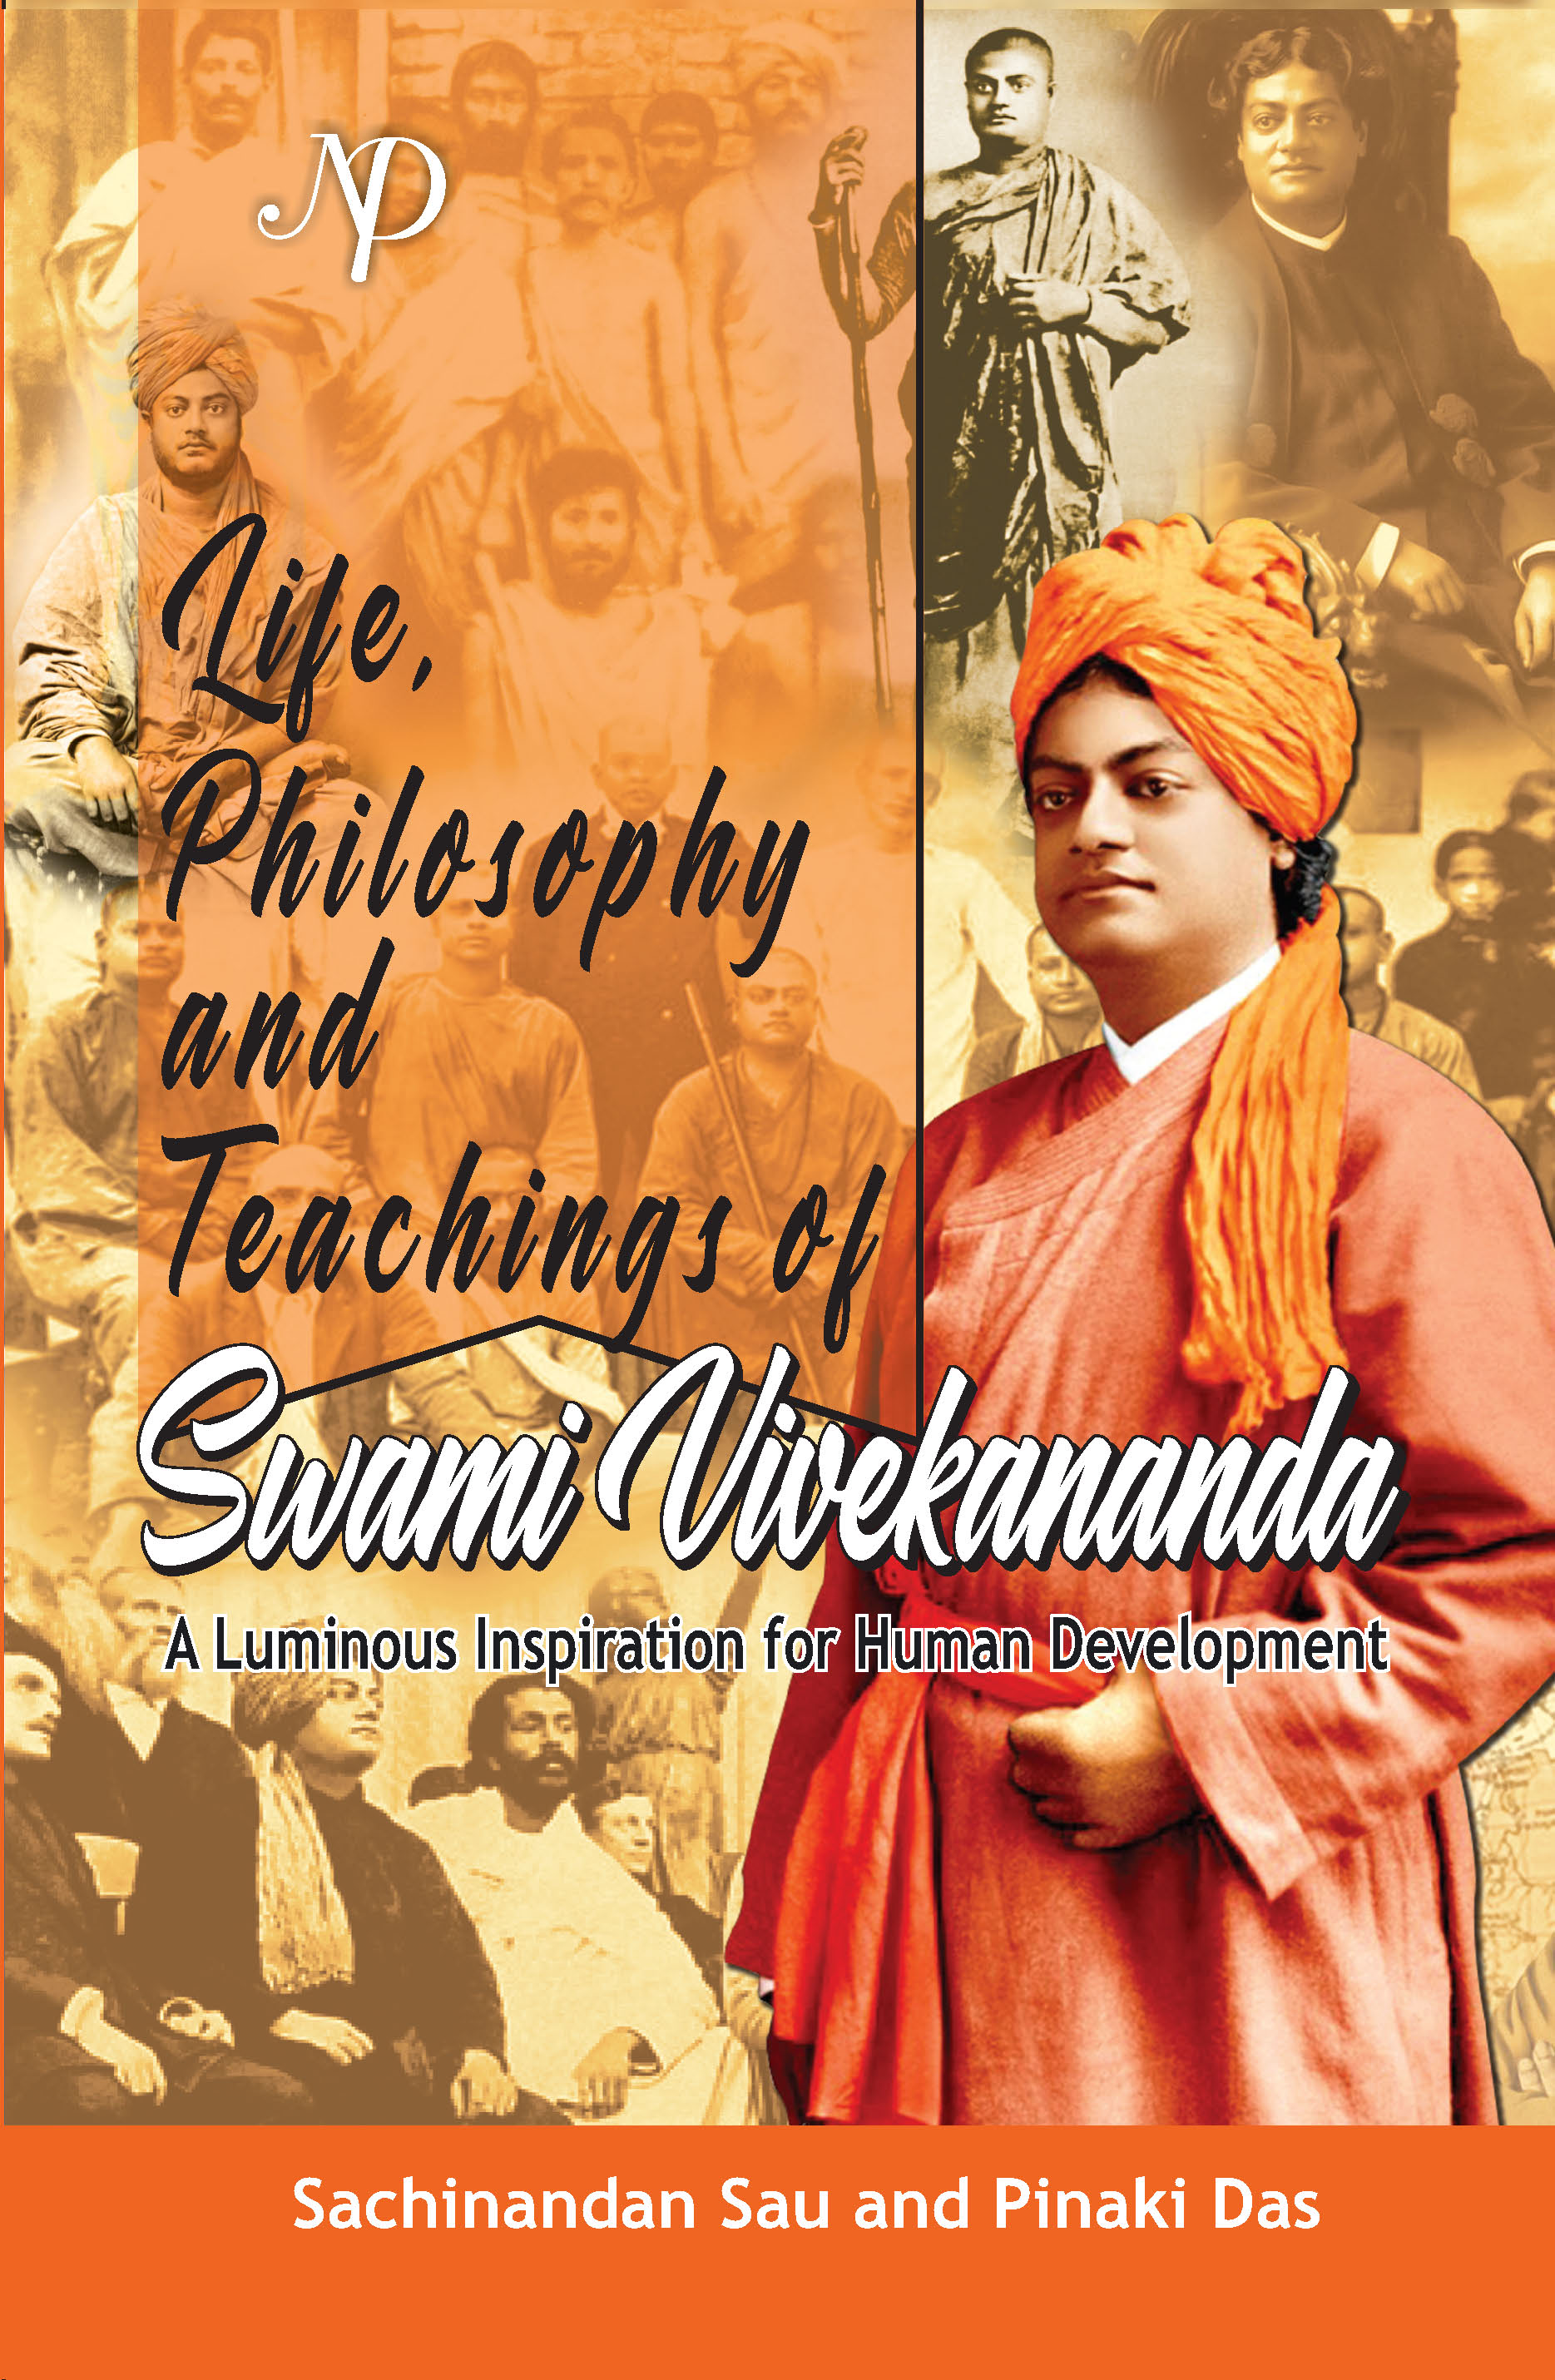 Life, Philosophy and Teachings of Swami Vivekananda: A Luminous Inspiration for Human Development